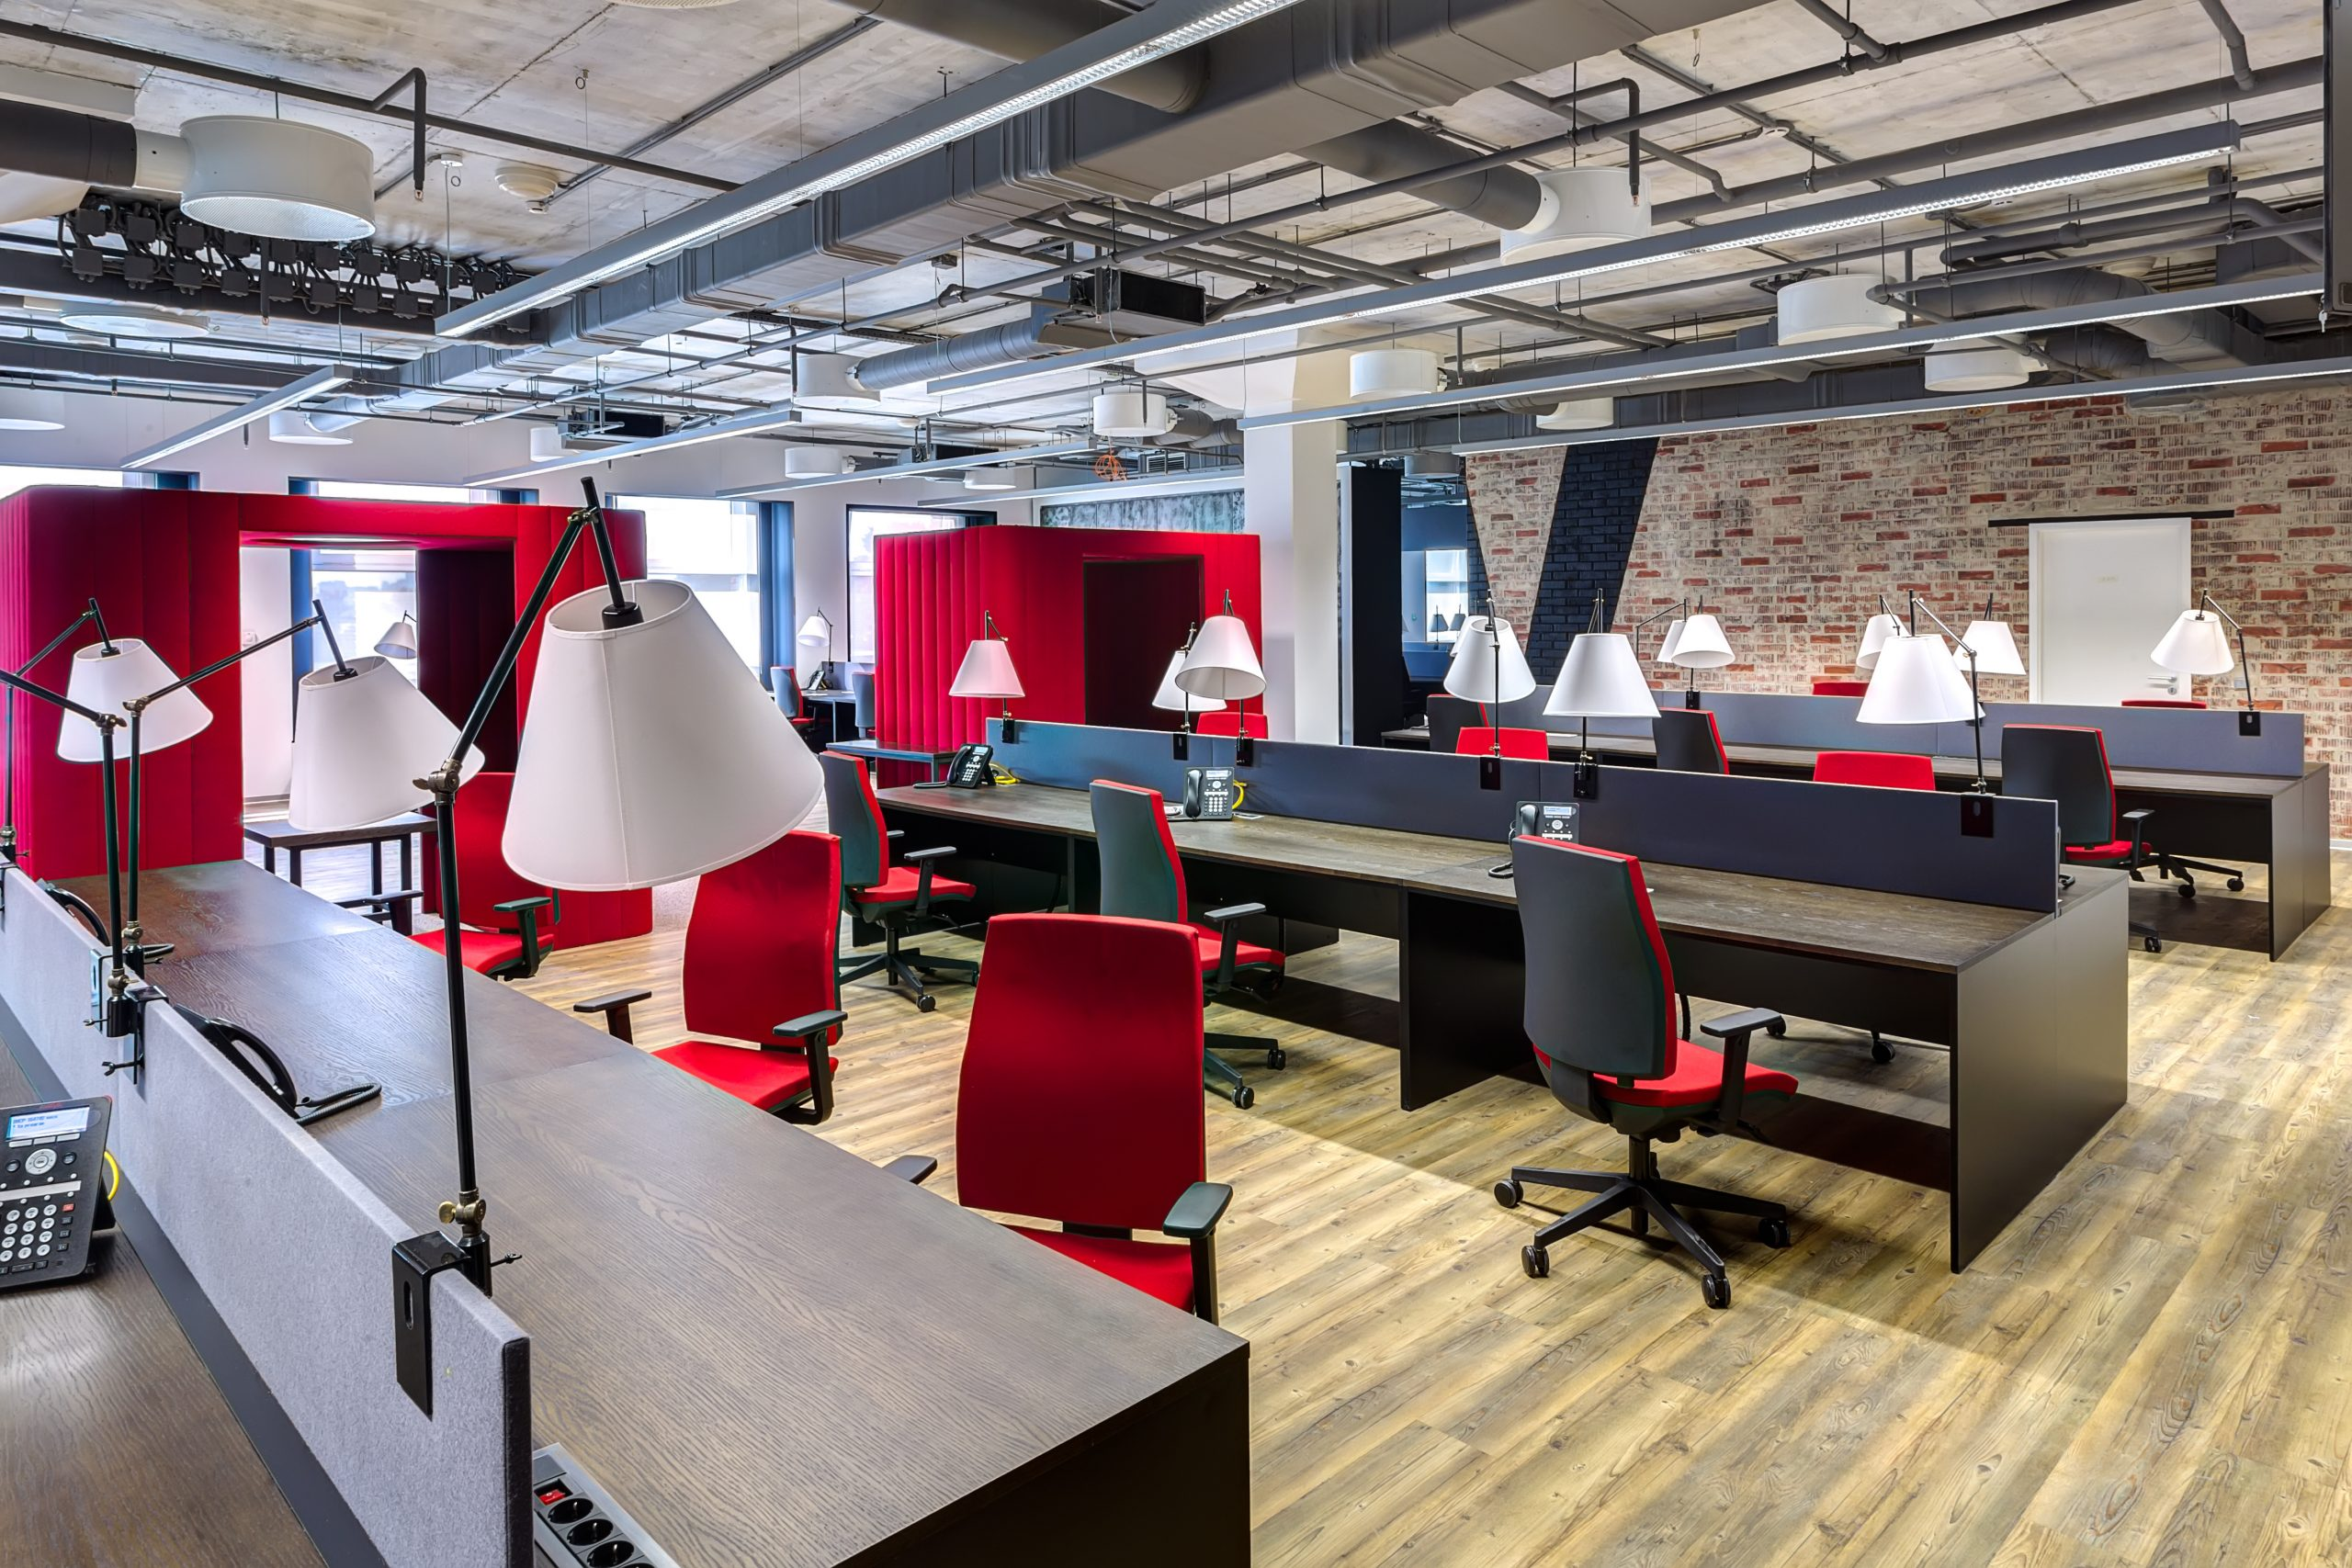 Outgrown its workspace